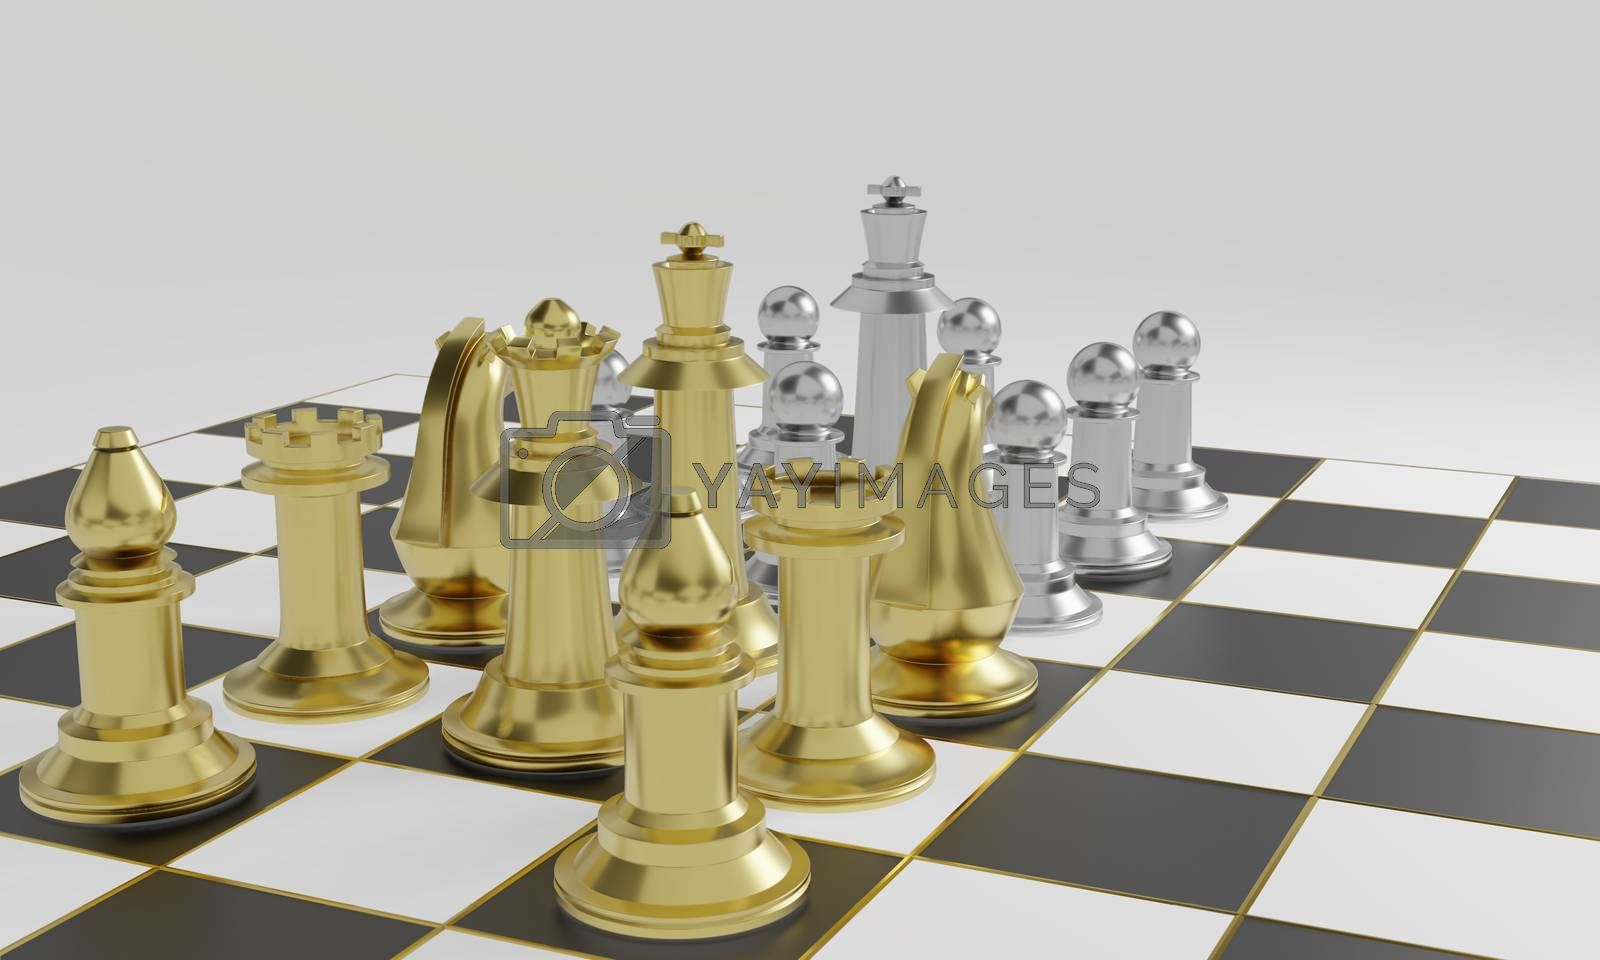 Royalty free image of Golden chess pieces more powerful than silver chess pieces by eaglesky